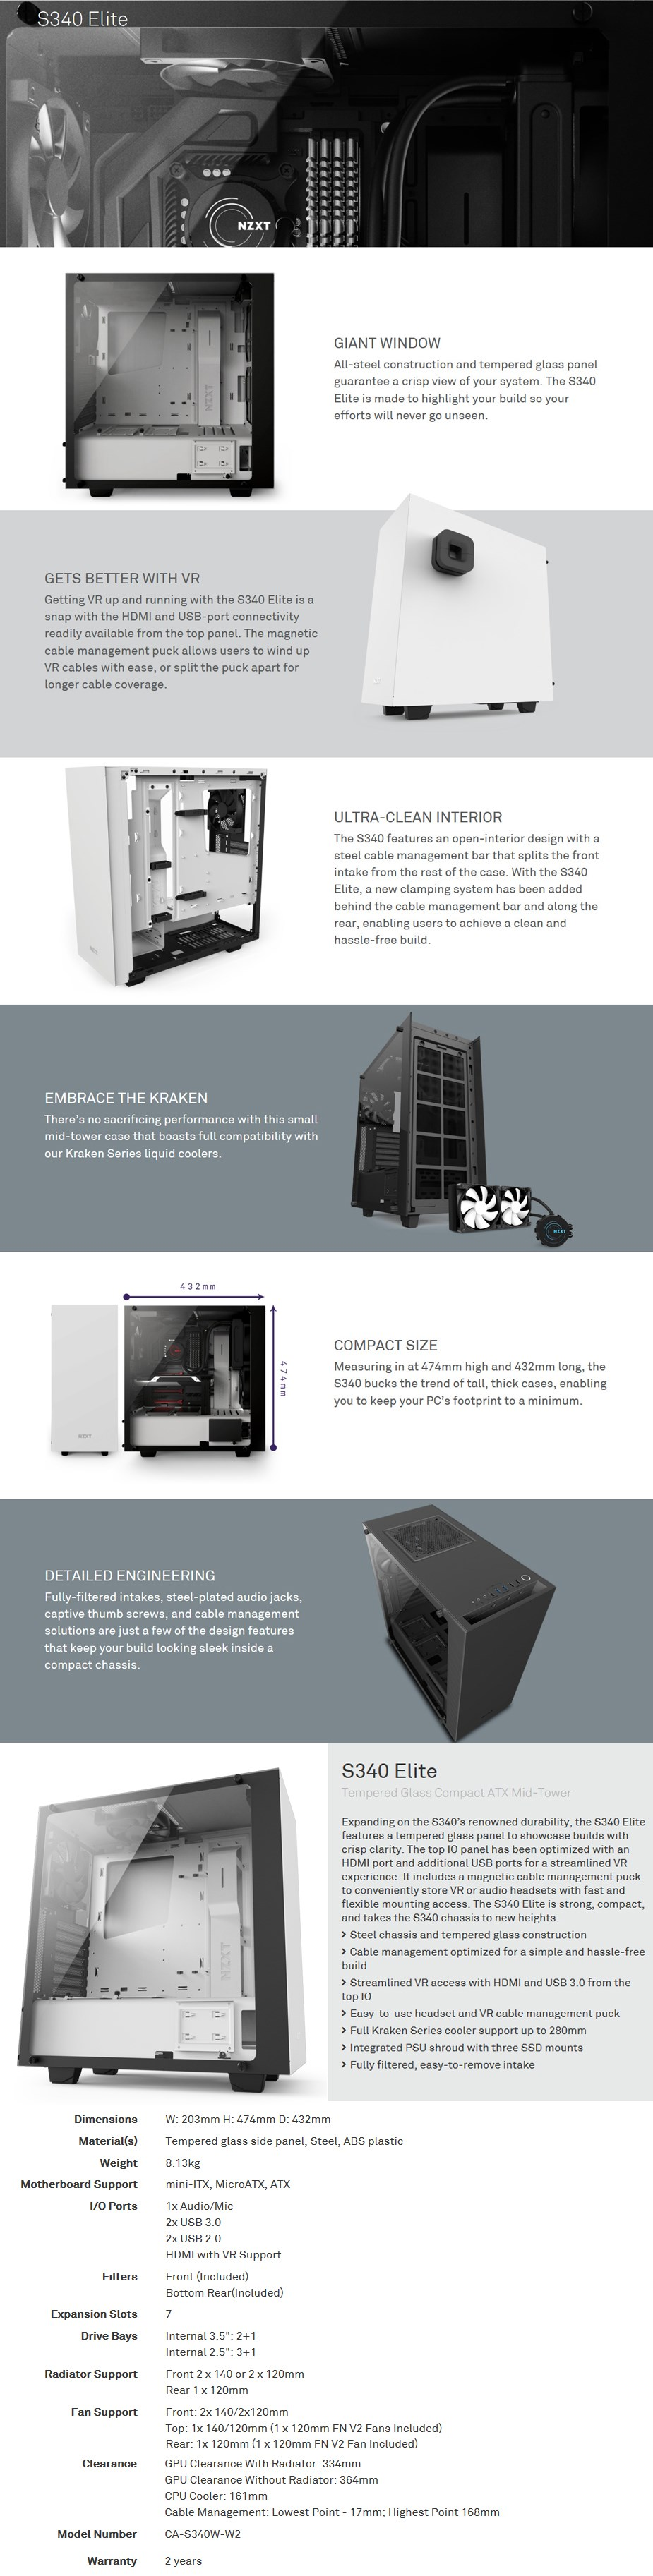 NZXT Source S340 Elite Tempered Glass Mid-Tower ATX Case - Matte White - Desktop Overview 1